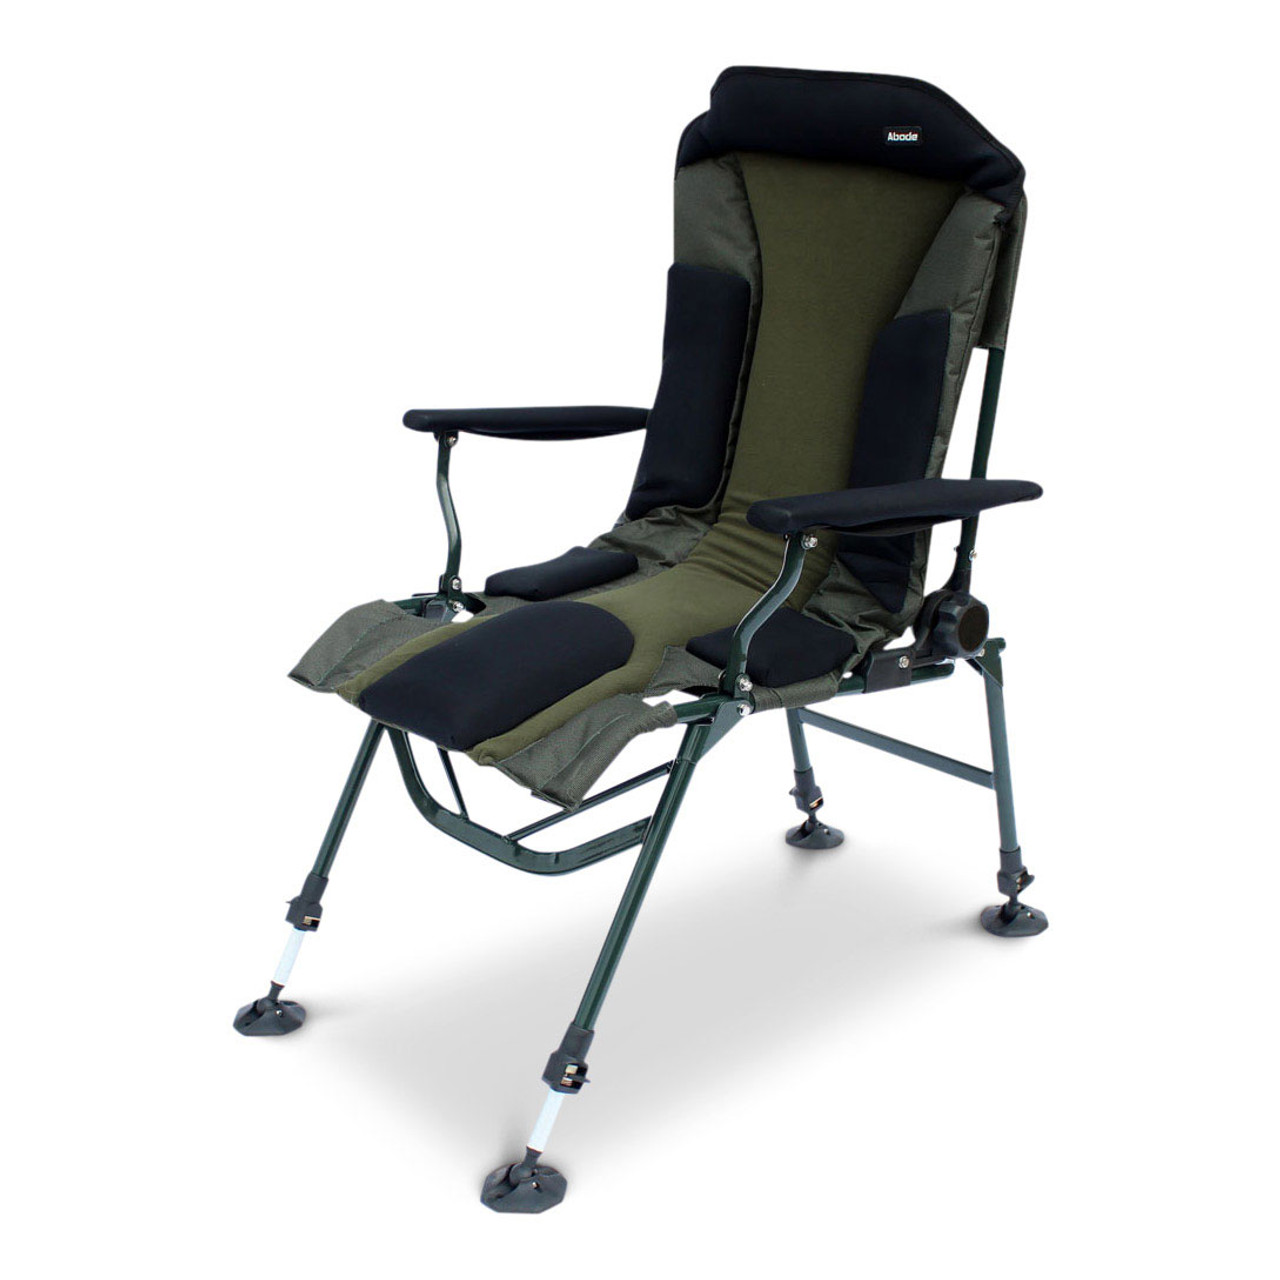 swivel camp chair folding beds foam 2 abode carp fishing camping easy arm long leg